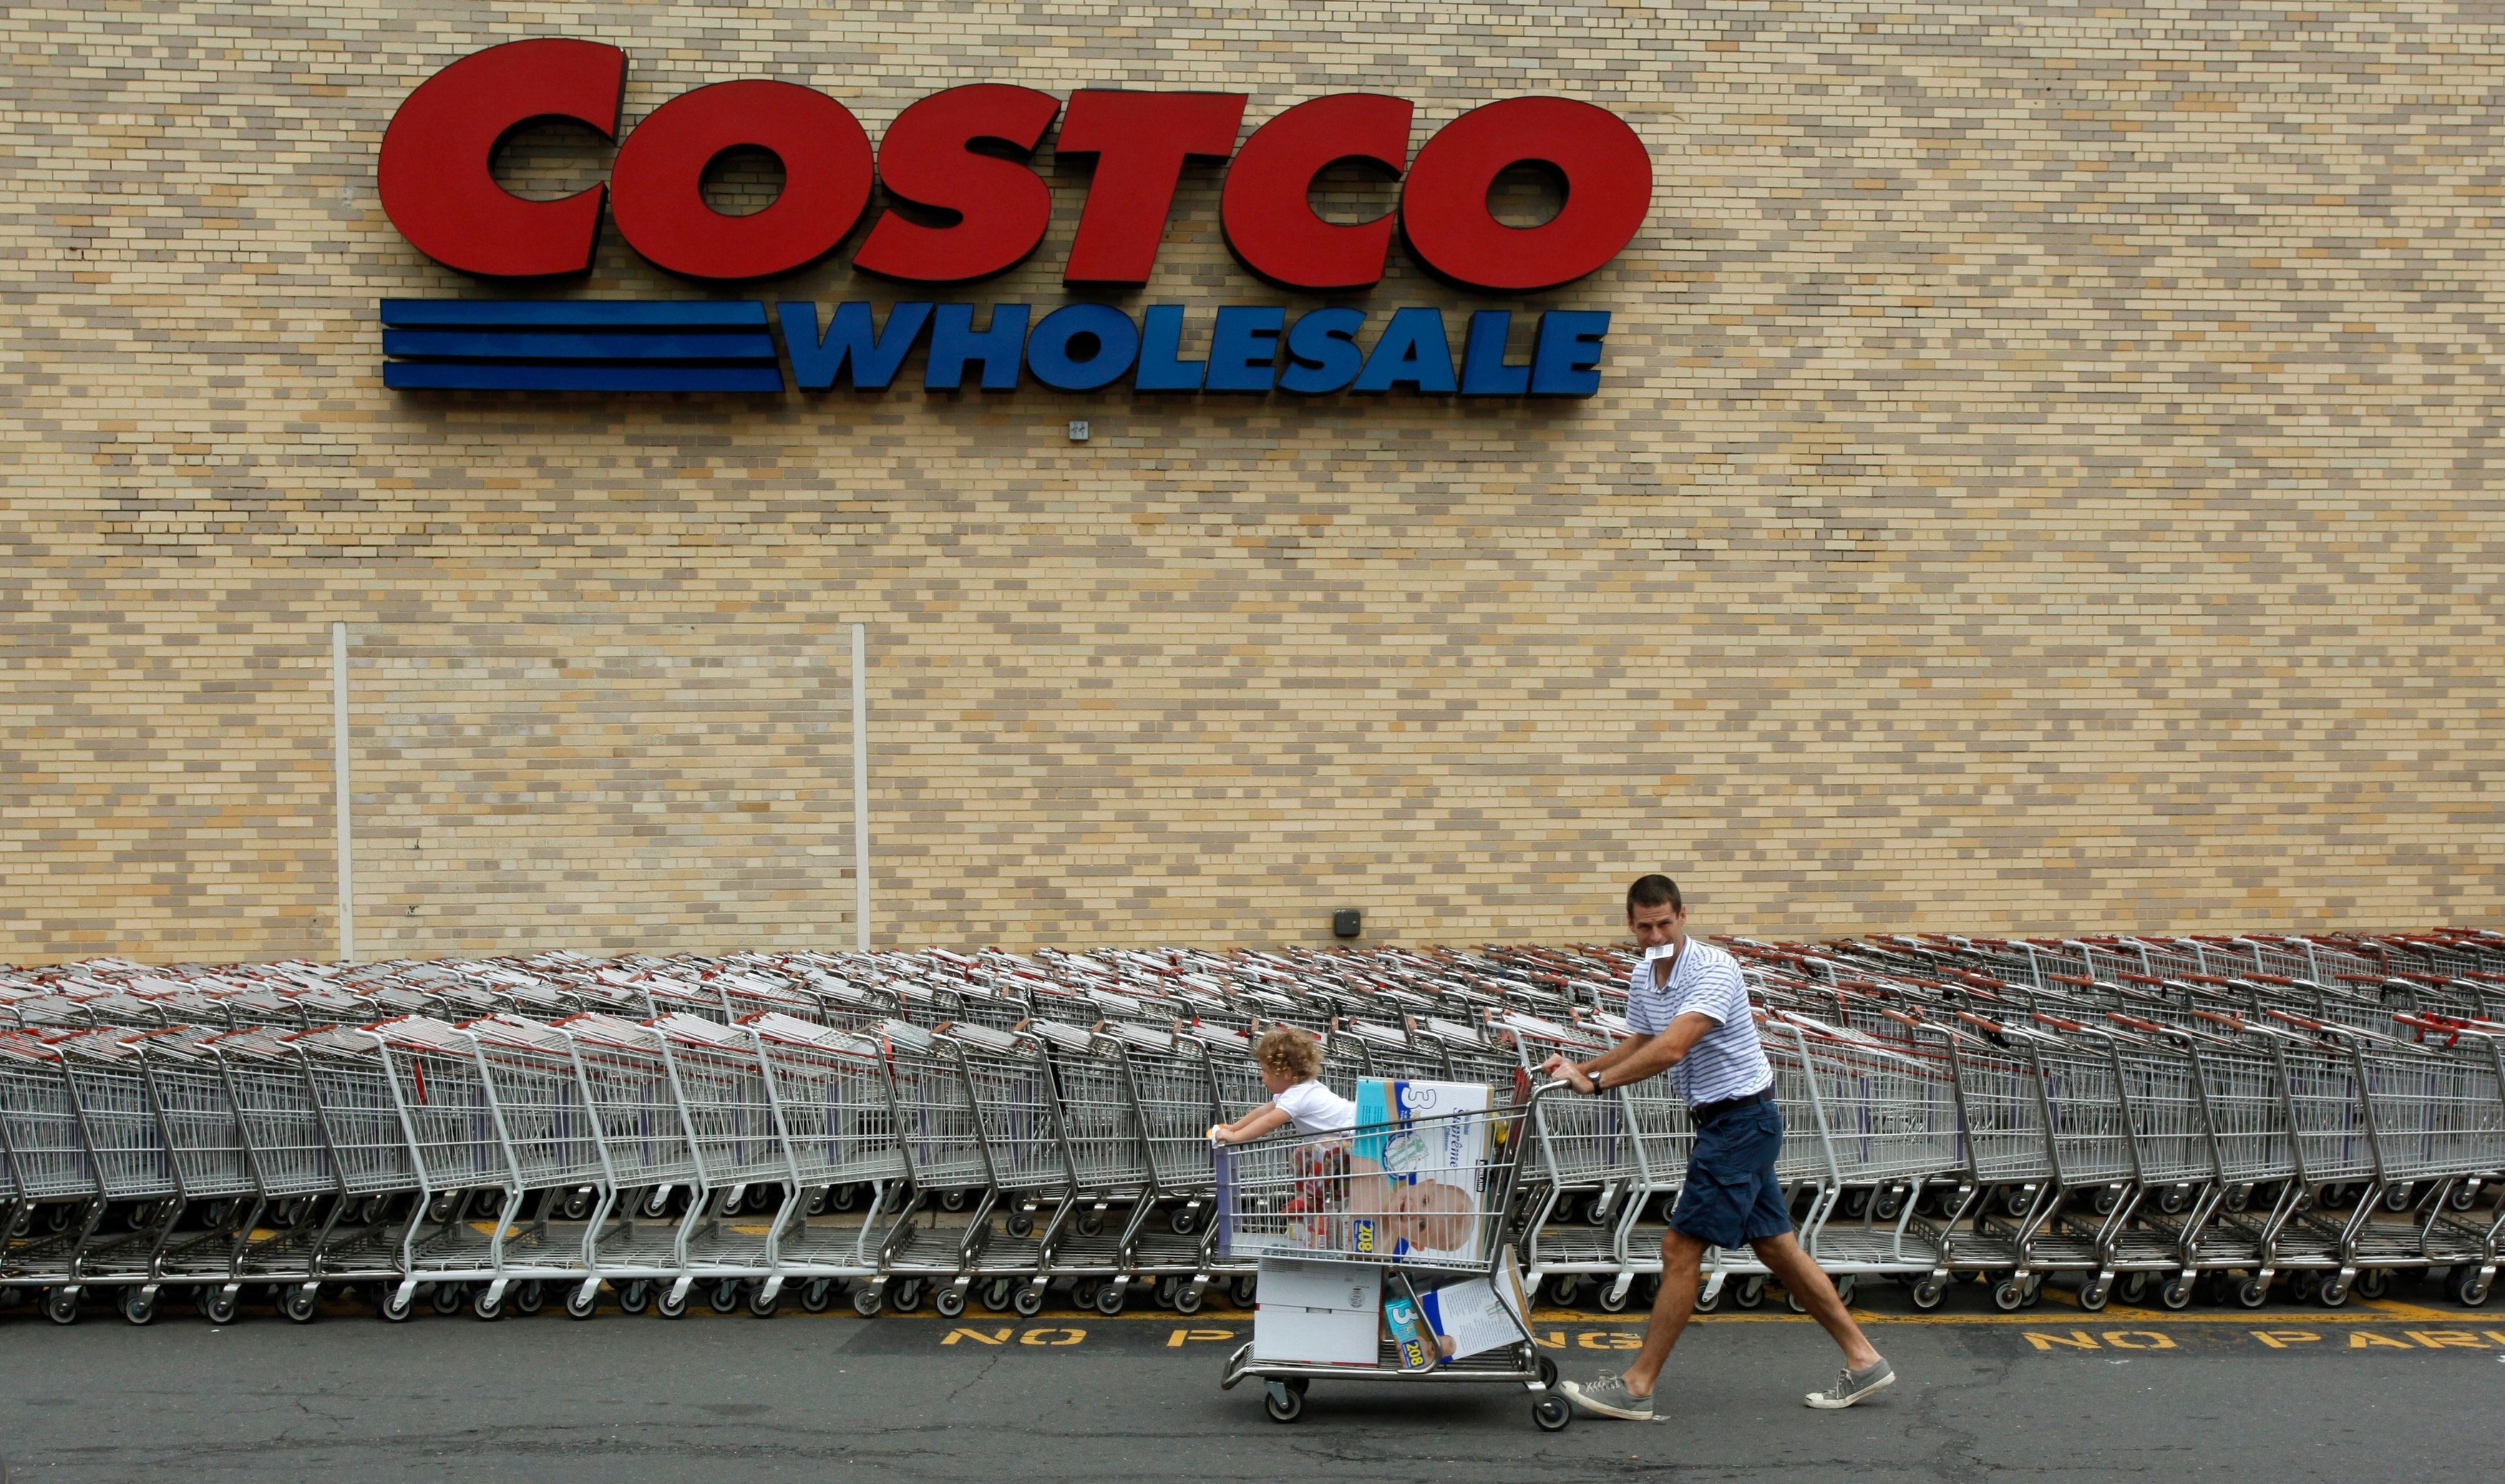 A shopper wheels his cart from a Costco Wholesale store in Arlington, Virginia August 6, 2009. Costco Wholesale Corp reported a bigger-than-expected 7 percent fall in July same-store sales hurt mainly by a strong U.S. dollar. REUTERS/Richard Clement (UNITED STATES BUSINESS)